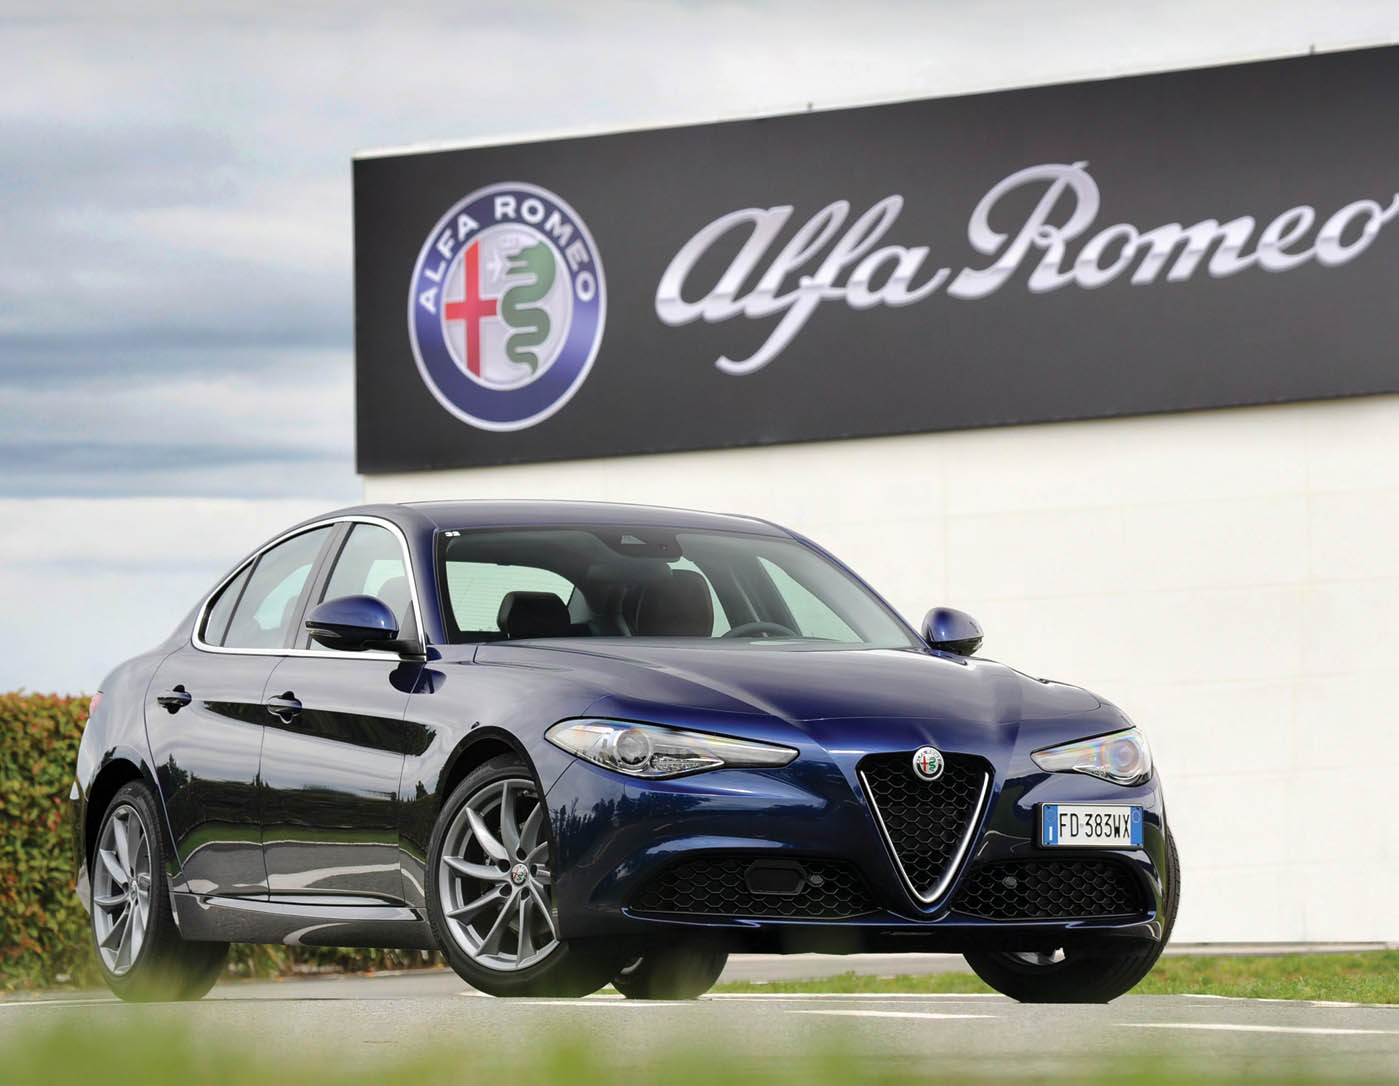 Alfa romeo giulia quadrifoglio manual vs automatic